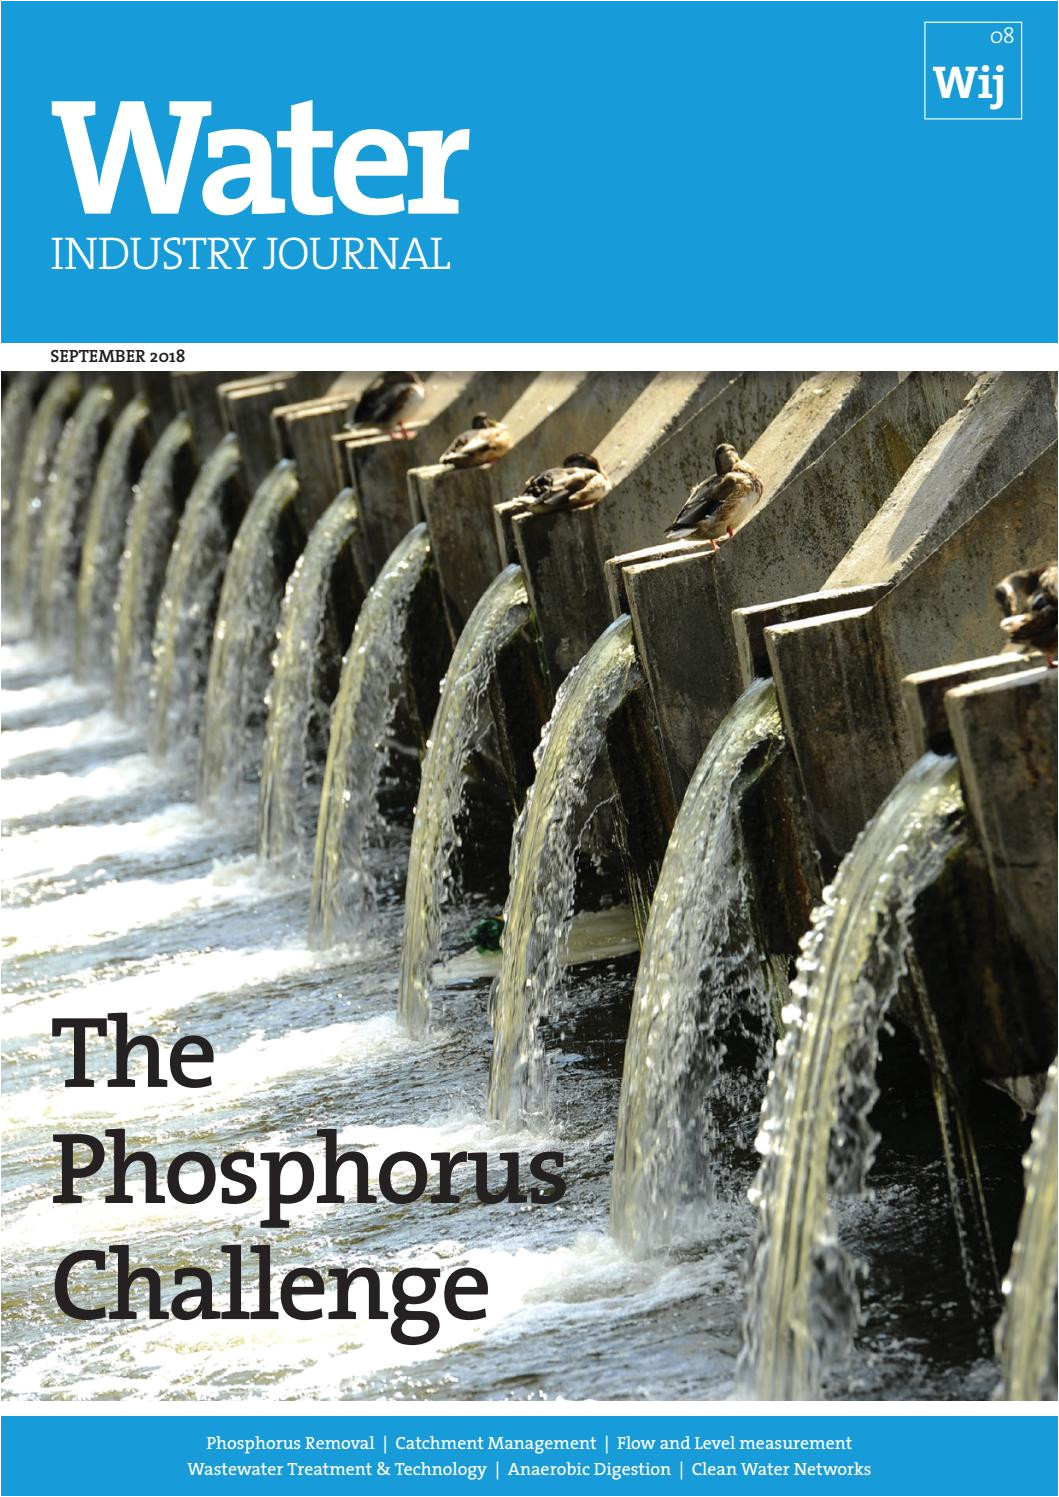 Pool Leak Detection and Repair Houston Water Industry Journal 8 by Distinctive Publishing issuu